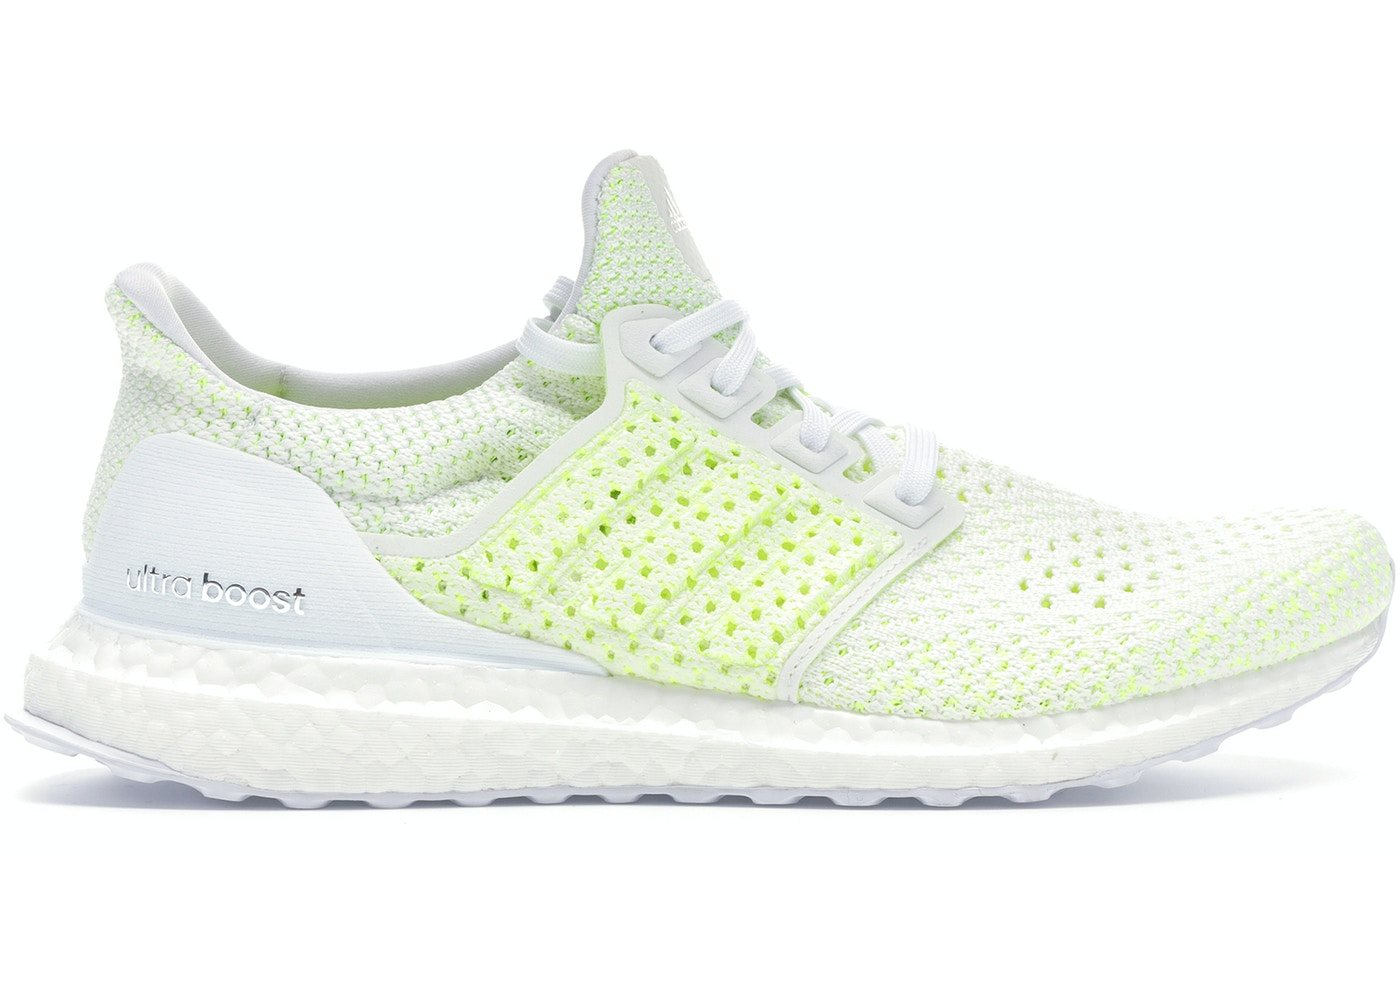 outlet store 4c188 9006d Buy adidas Ultra Boost Size 9 Shoes  Deadstock Sneakers